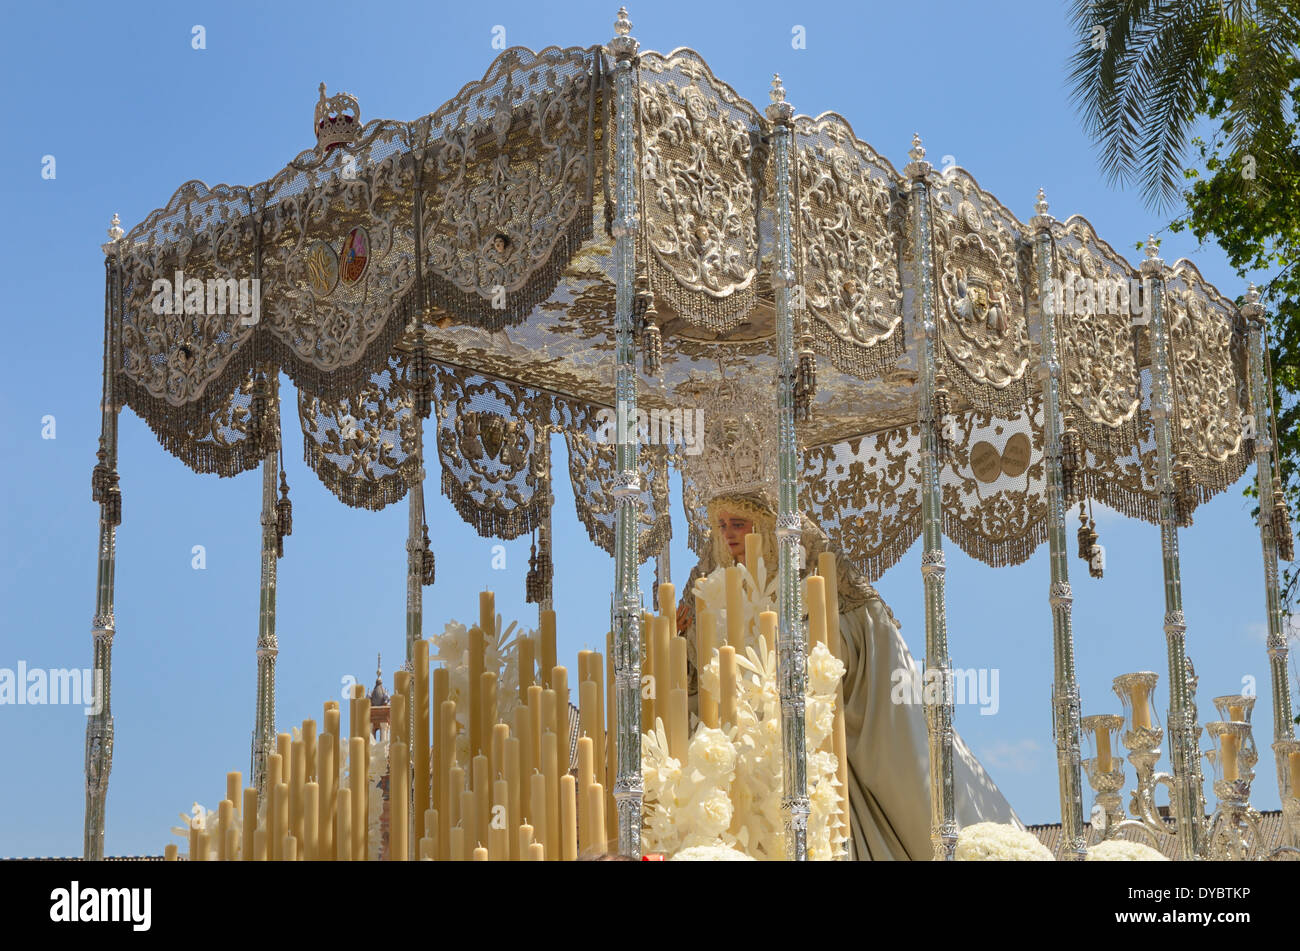 Image on the Virgin Mary in the holy week of Sevile, Andalusia, Spain. - Stock Image